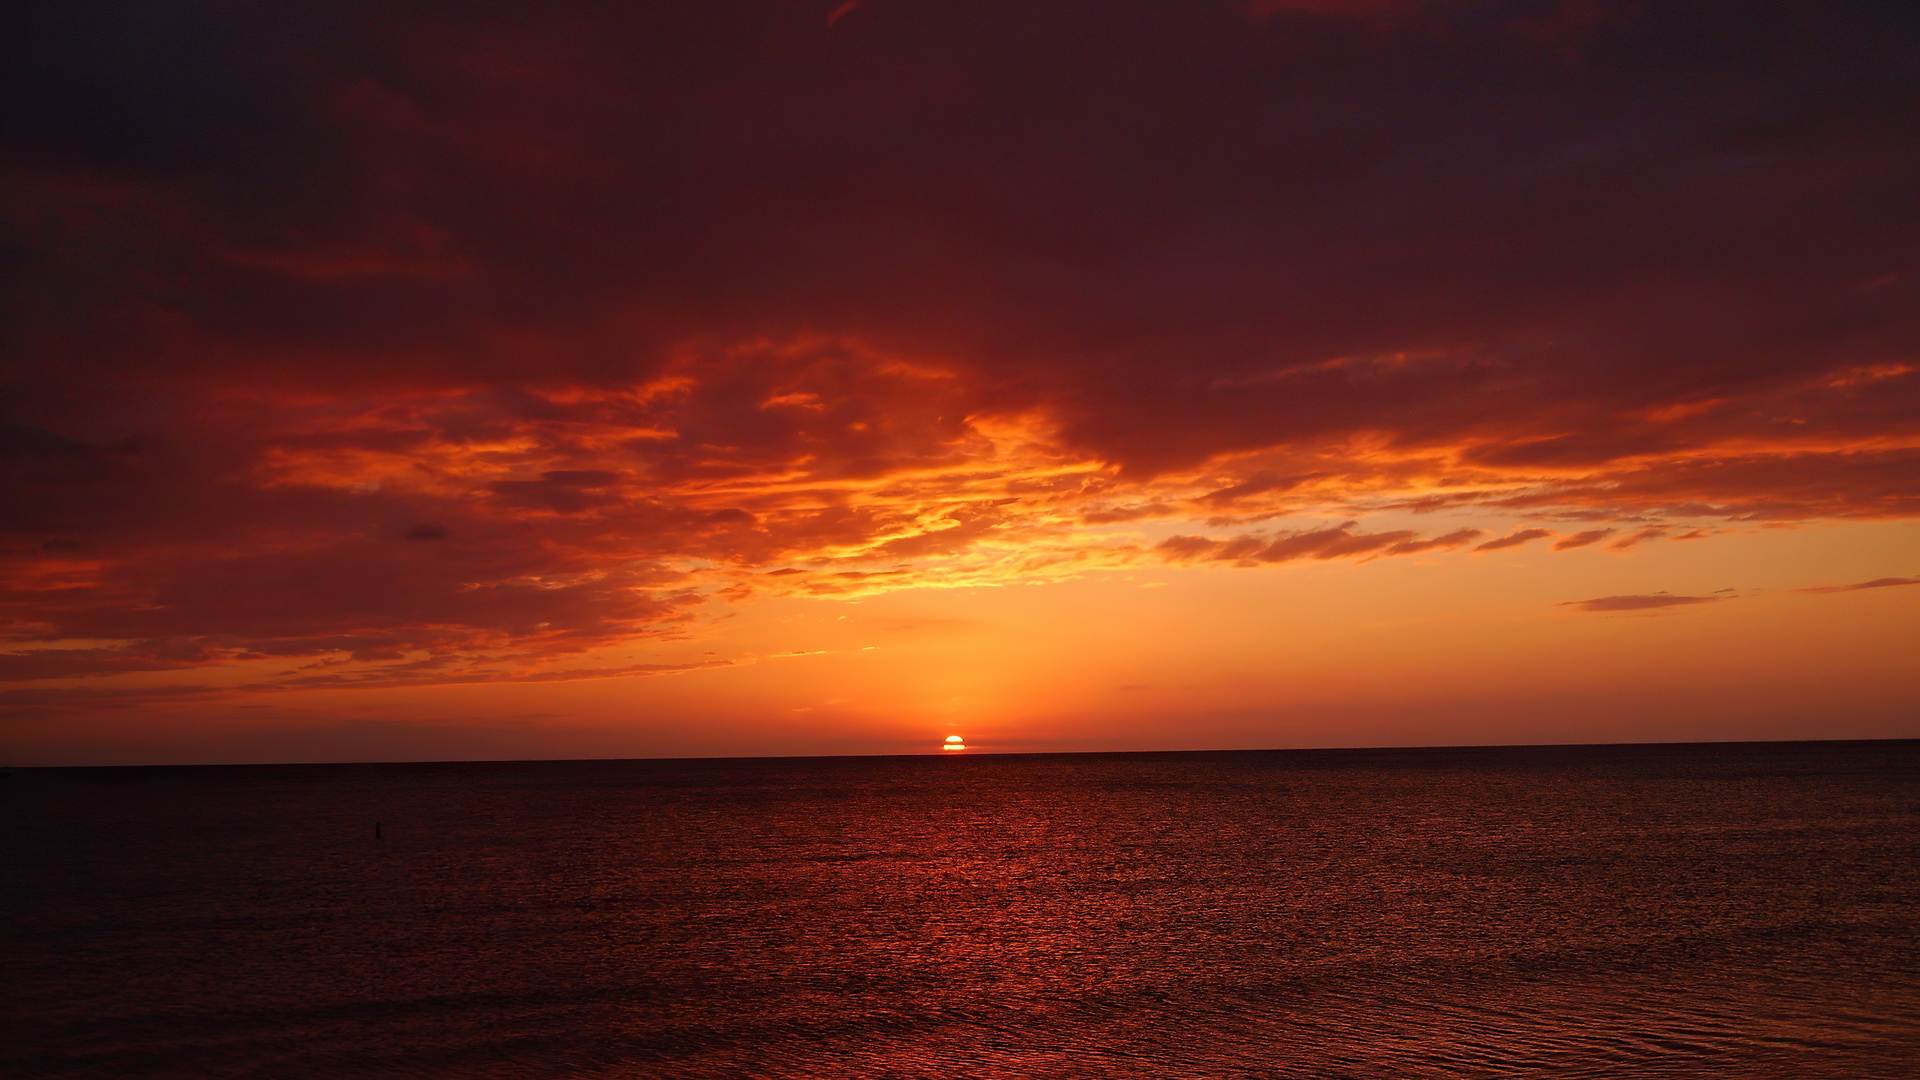 orange-sky-sunset-sea-4k-ji.jpg